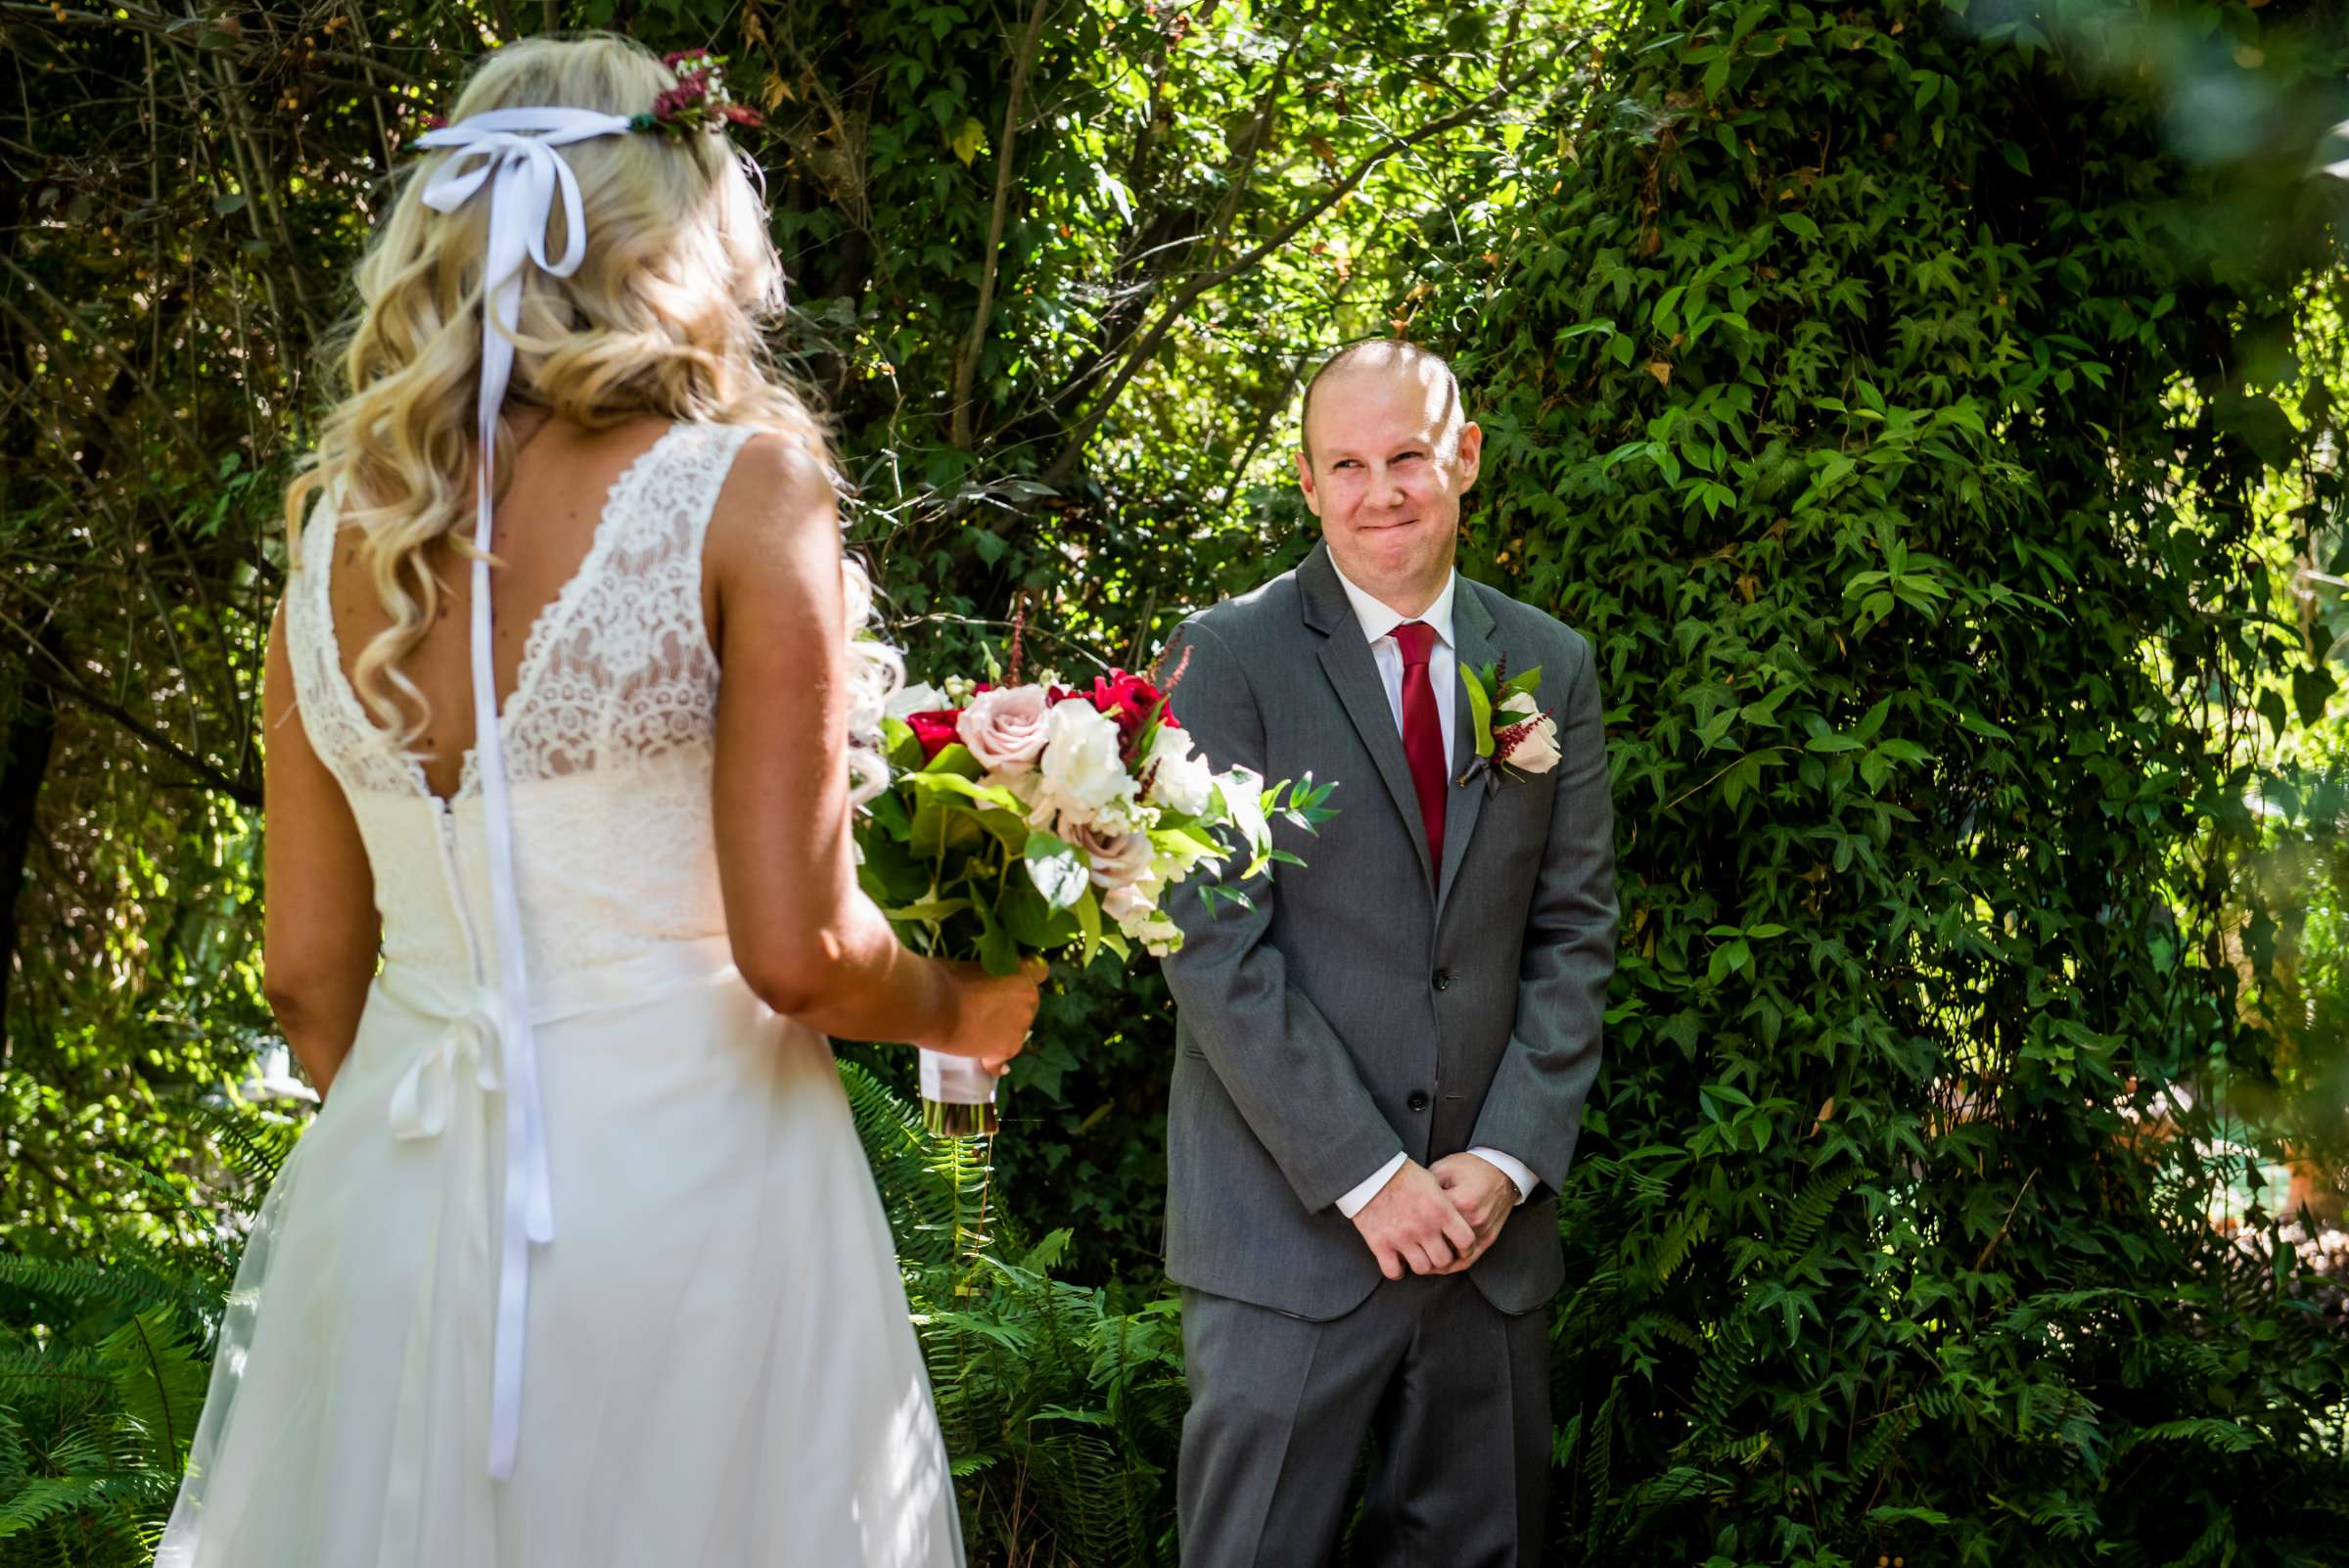 Twin Oaks House & Gardens Wedding Estate Wedding, Brittany and Sean Wedding Photo #60 by True Photography